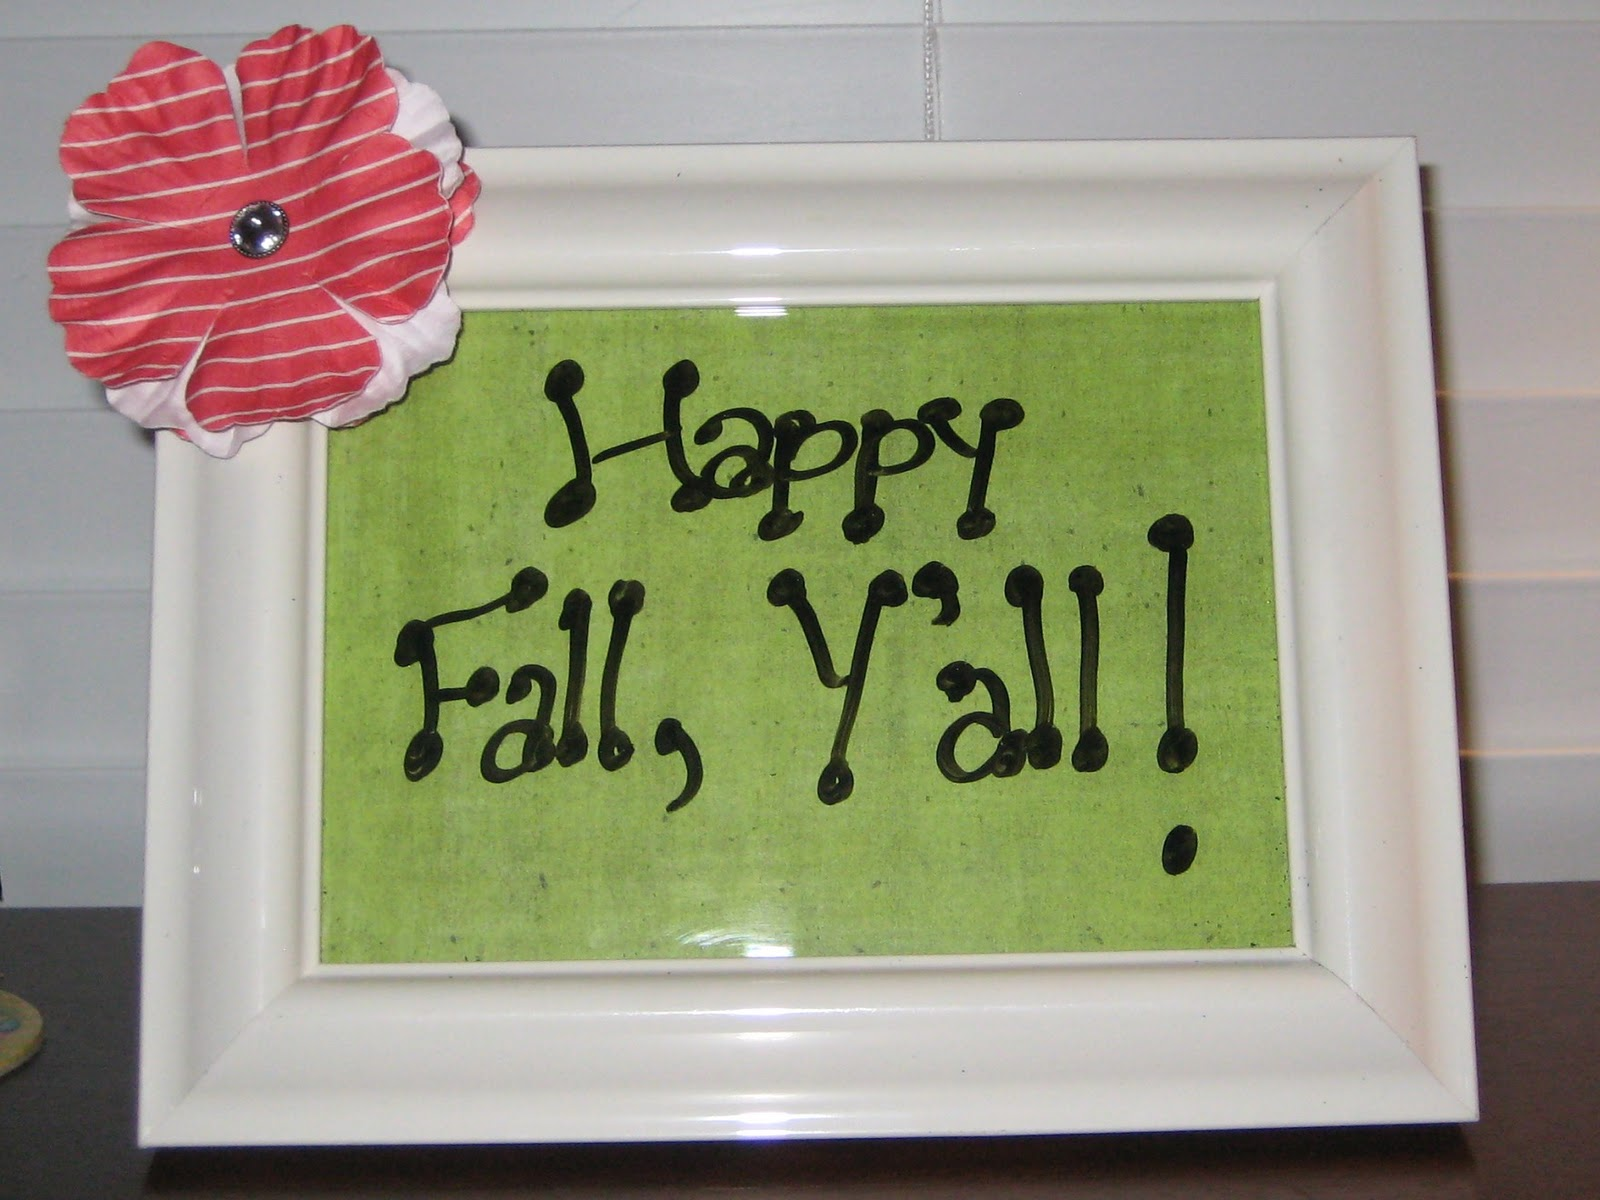 Make your own dry erase board mom 4 real make your own dry erase board jeuxipadfo Choice Image